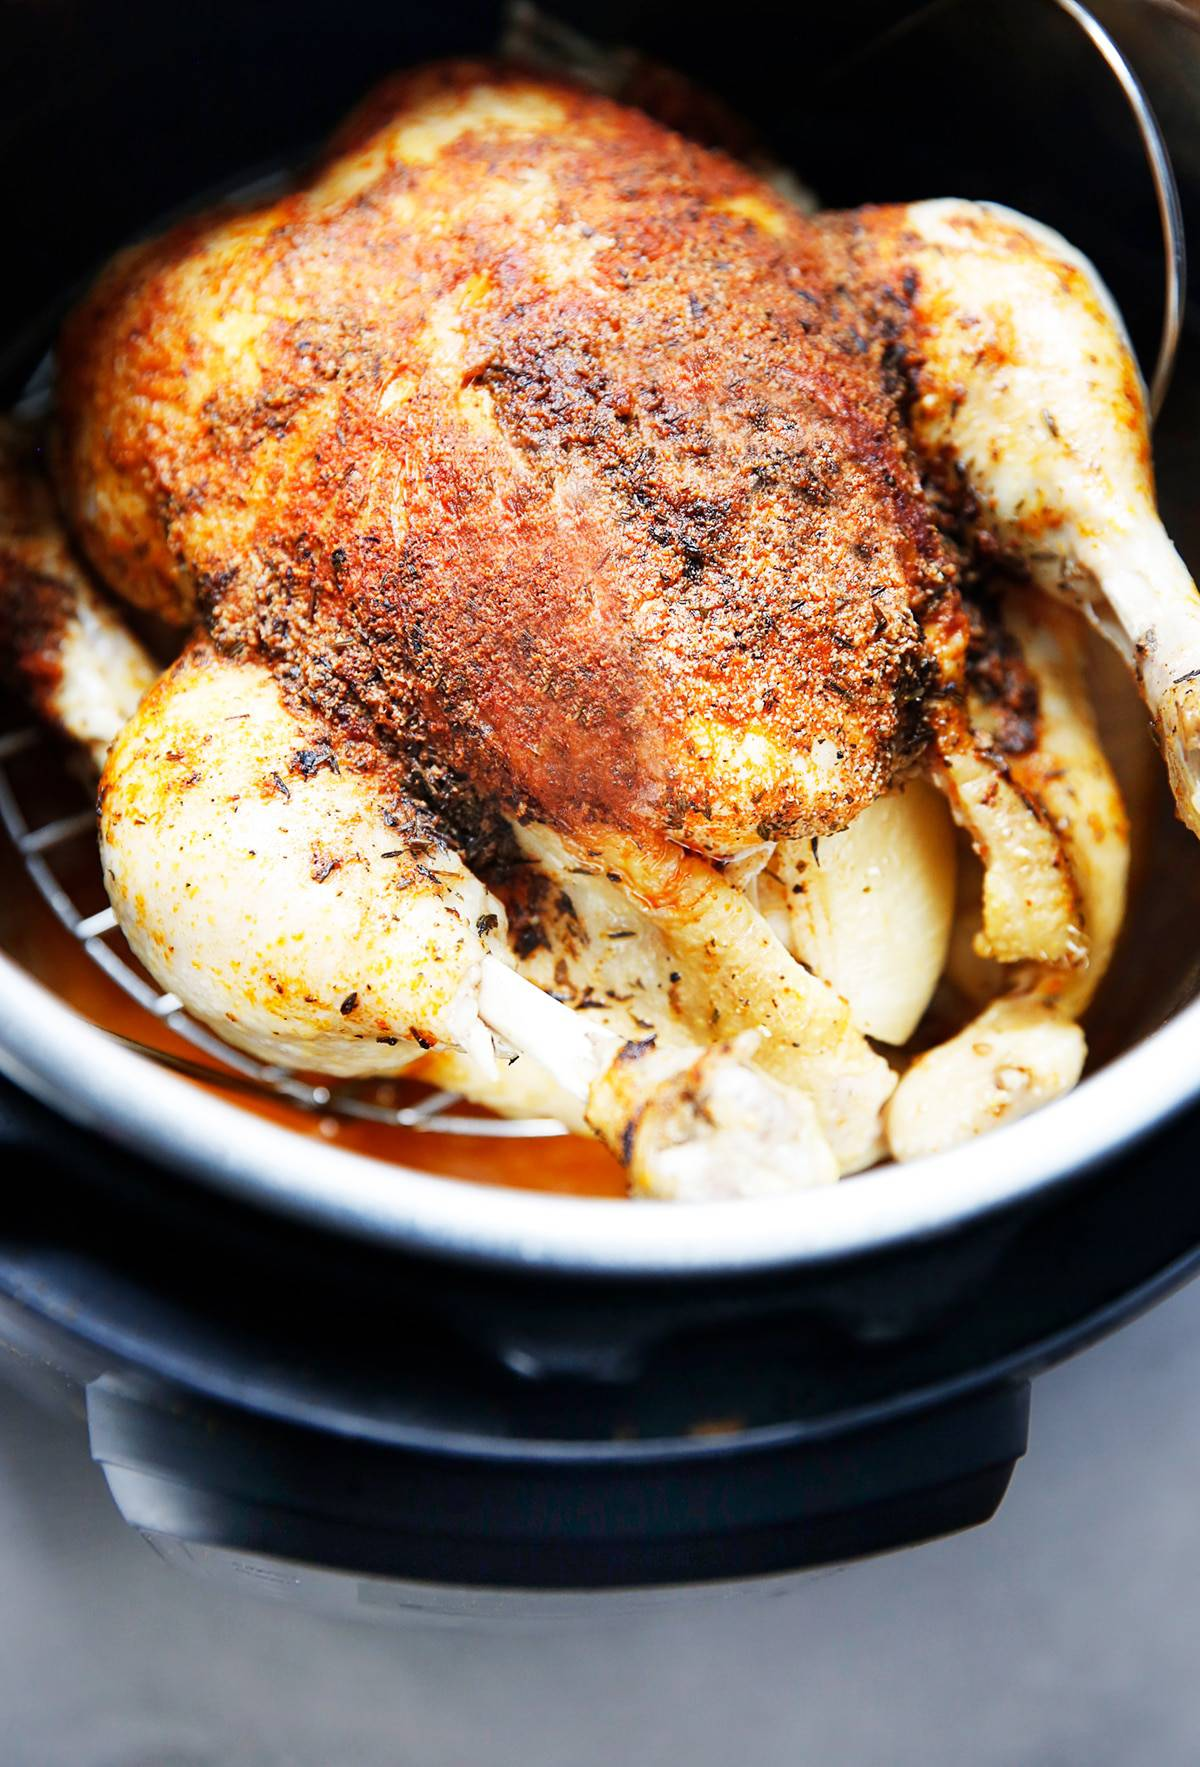 How long does it take to cook chicken in instant pot